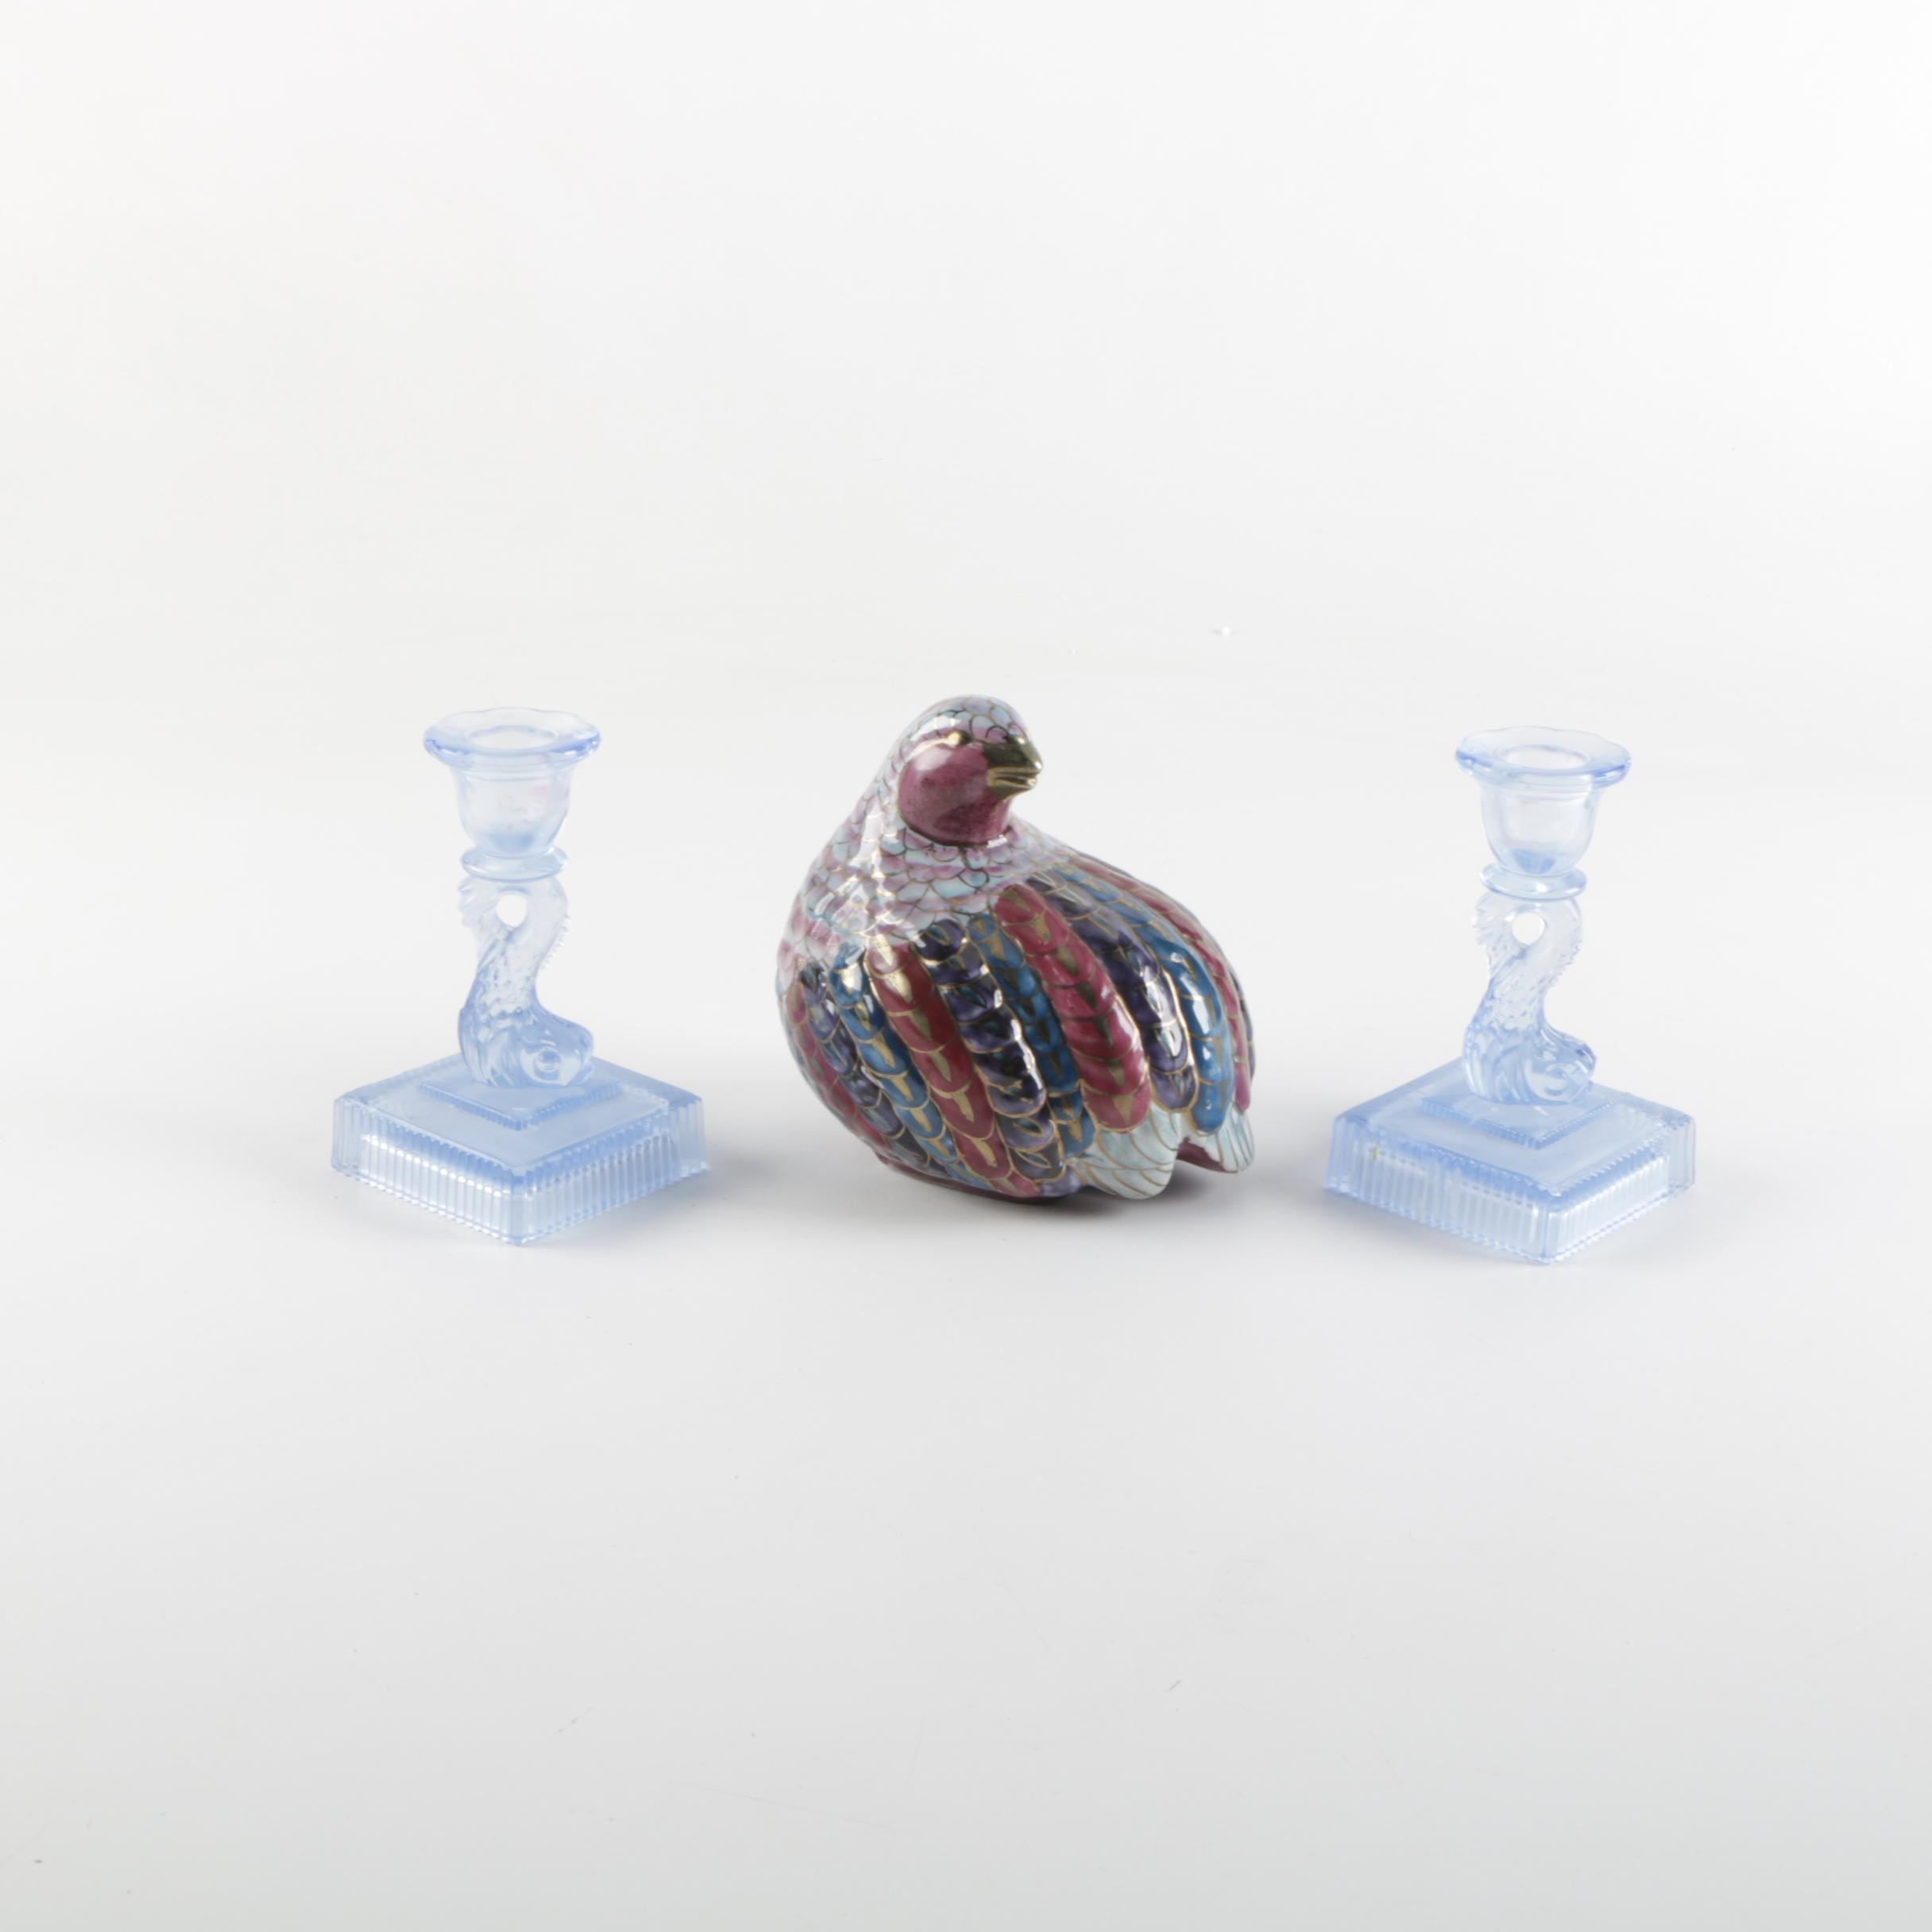 Glass Candle Holders and Ceramic Bird Figurine